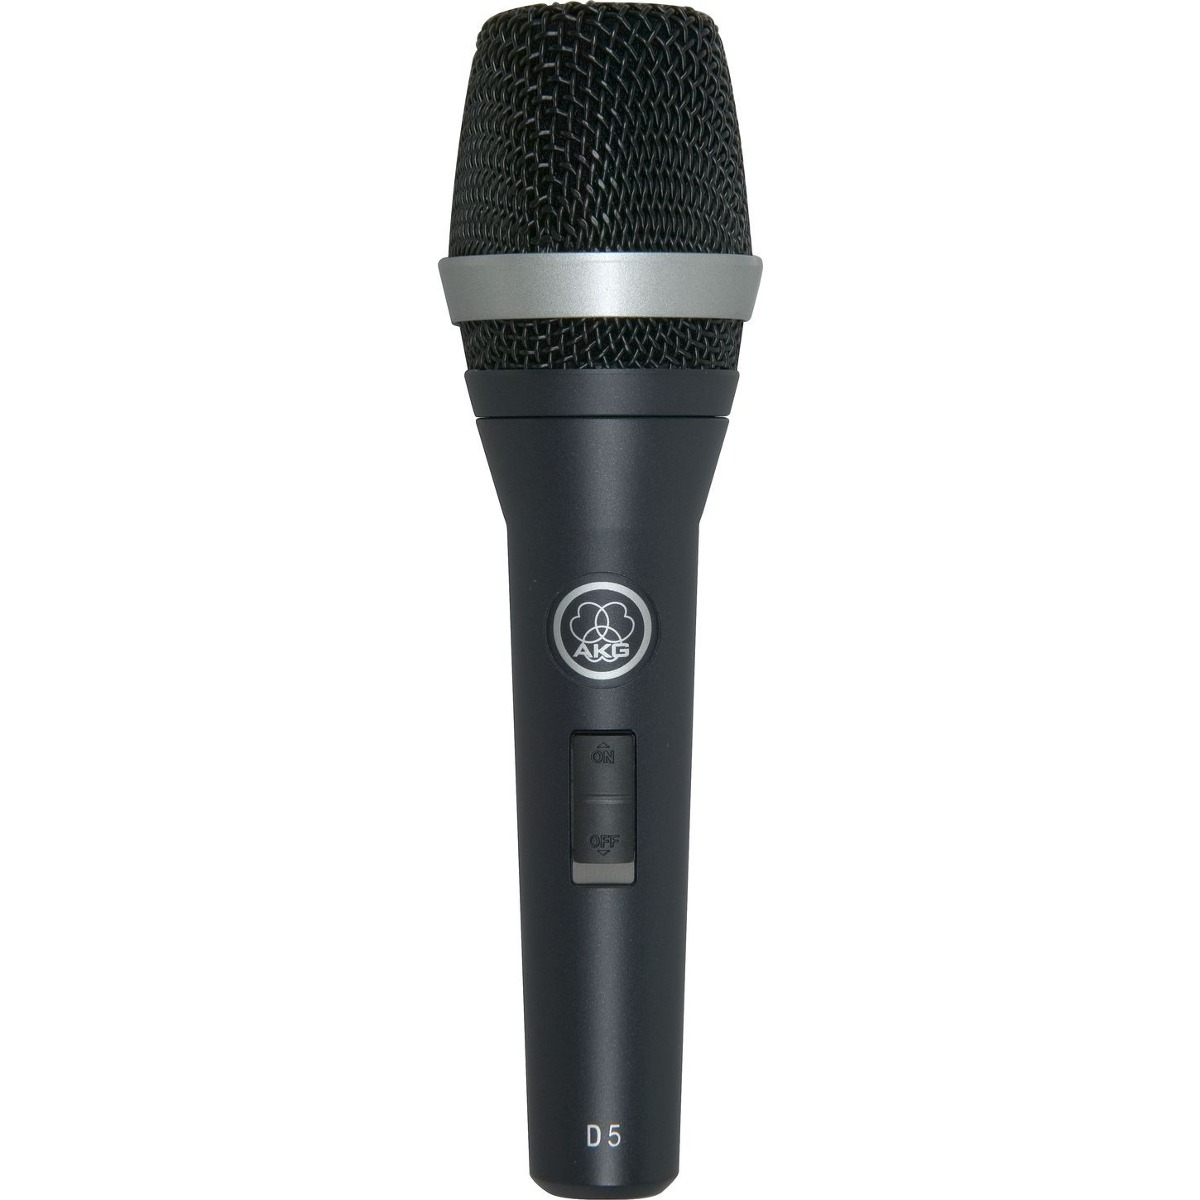 akg-d5-vocal_561cd65941e1d.jpg